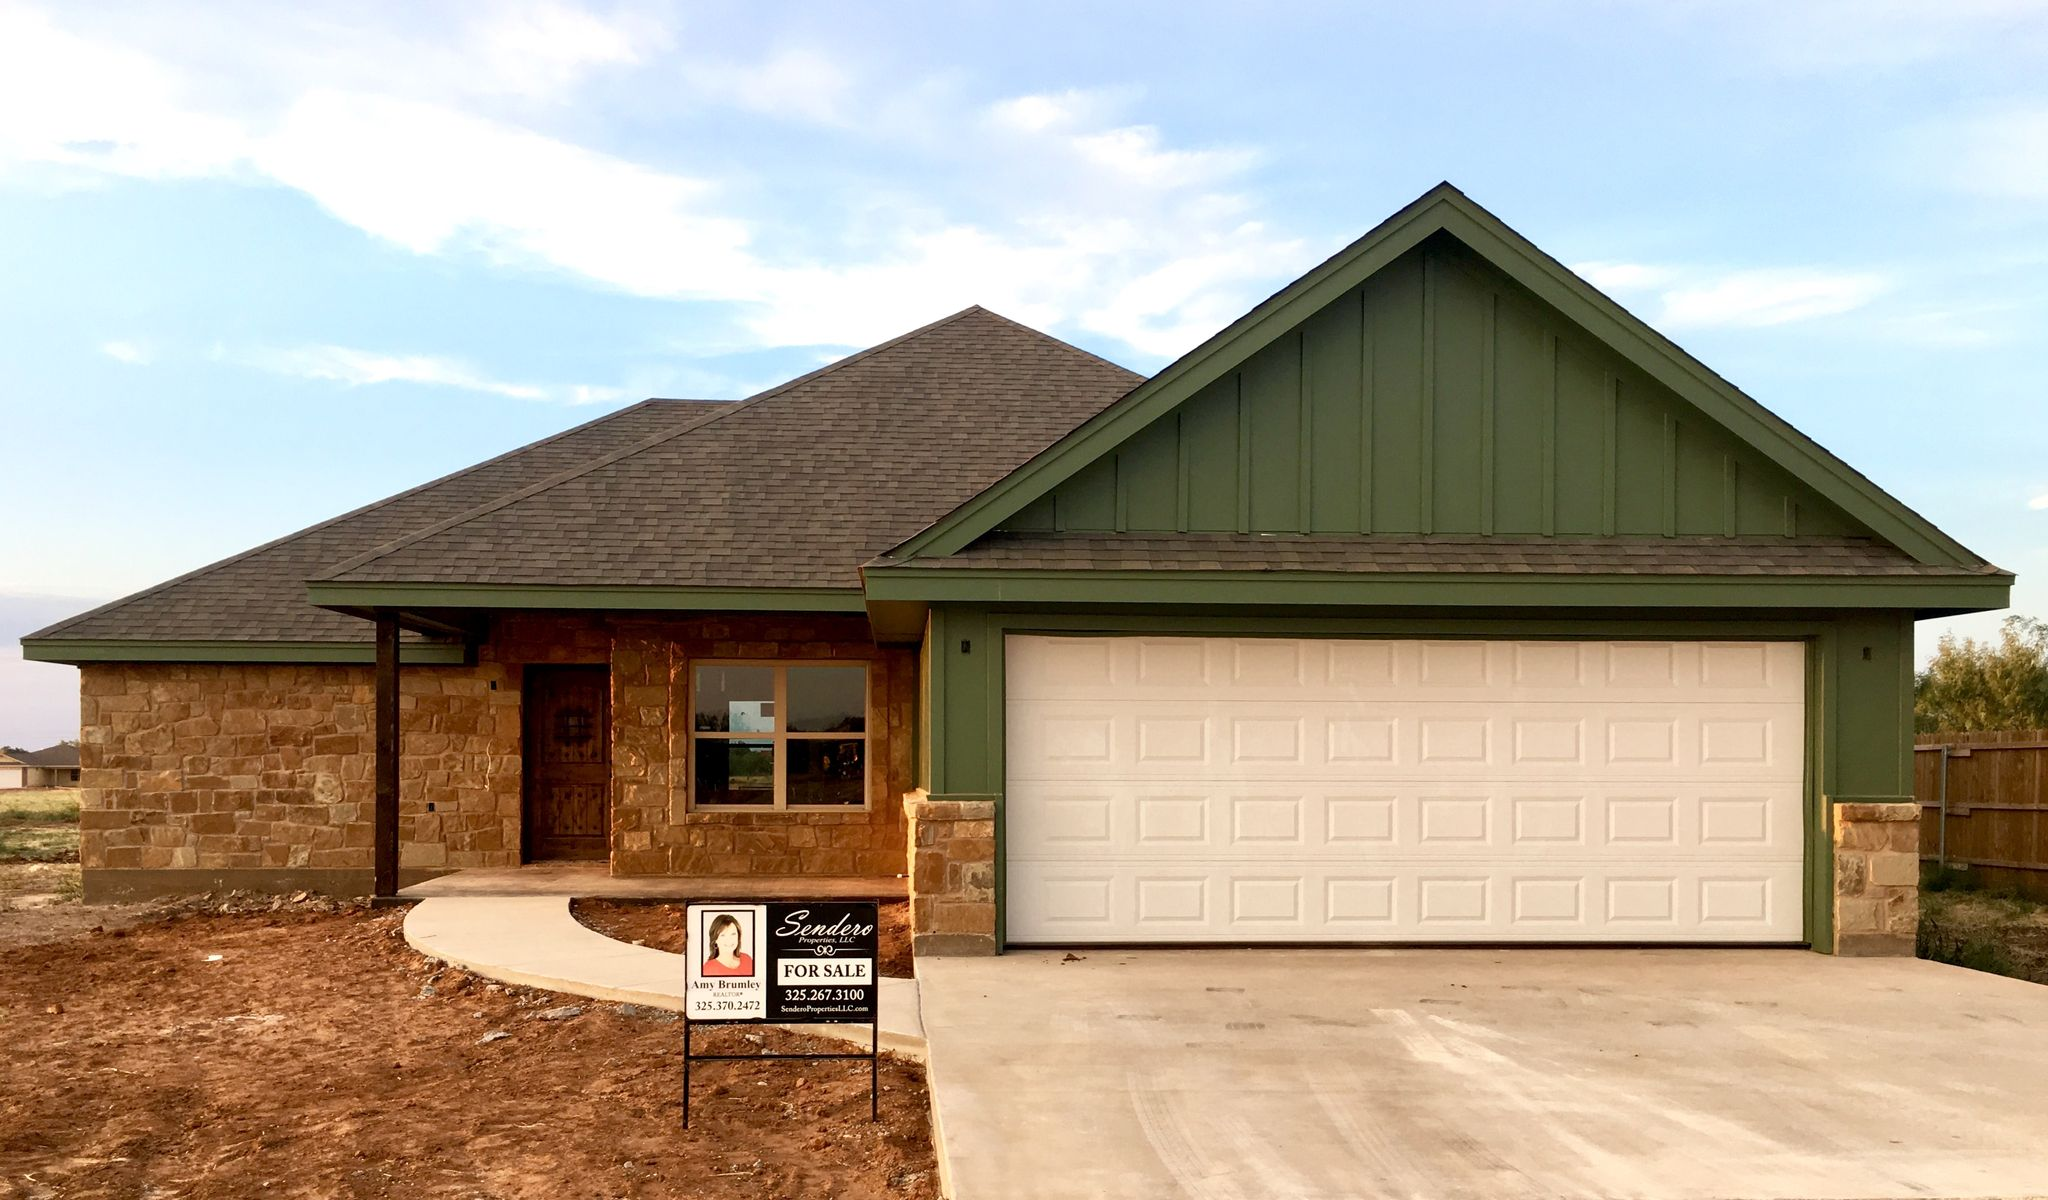 Home builders in abilene tx - 318 Hog Eye Rd